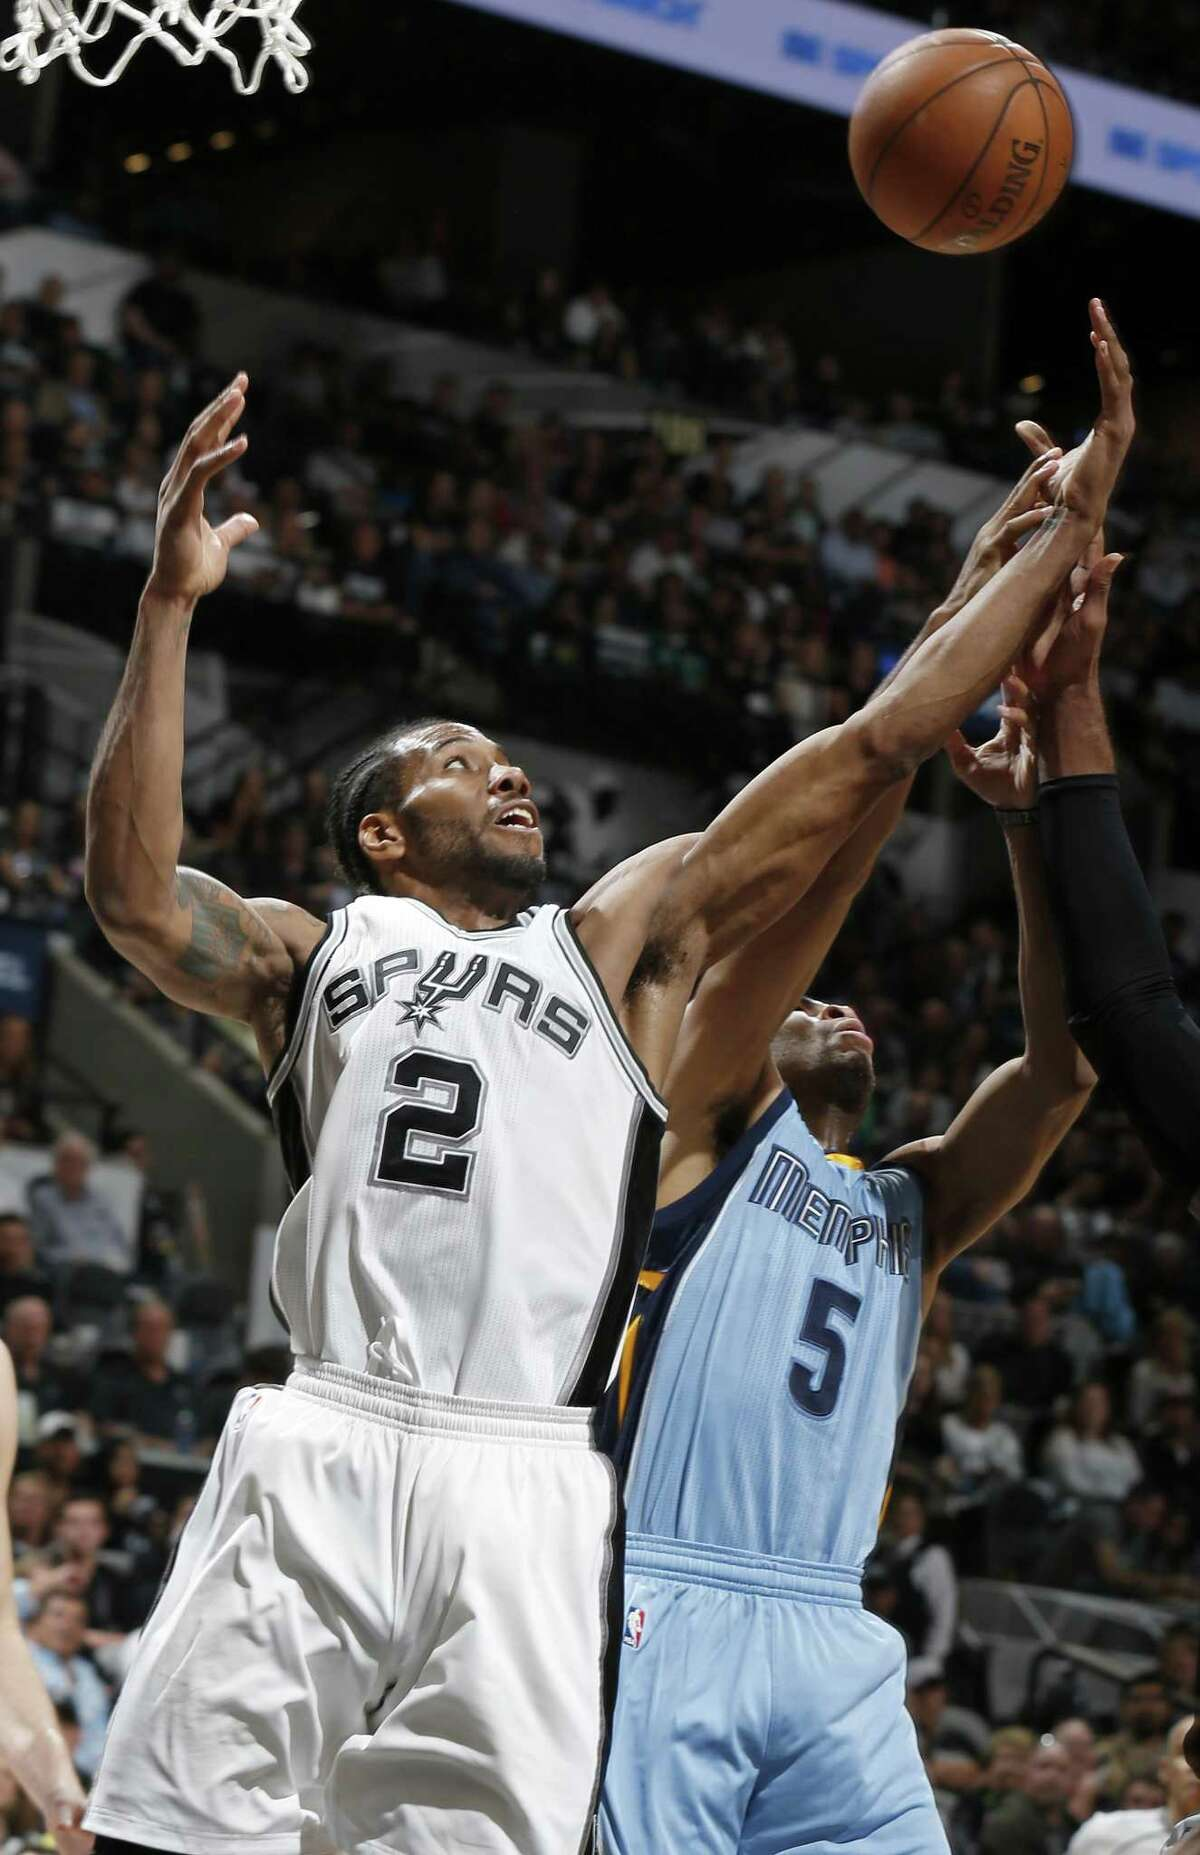 San Antonio Spurs' Kawhi Leonard grabs for a rebound against Memphis Grizzlies?• Andrew Harrison during second half action of Game 2 in the first round of the Western Conference playoffs held Monday April 17, 2017 at the AT&T Center.